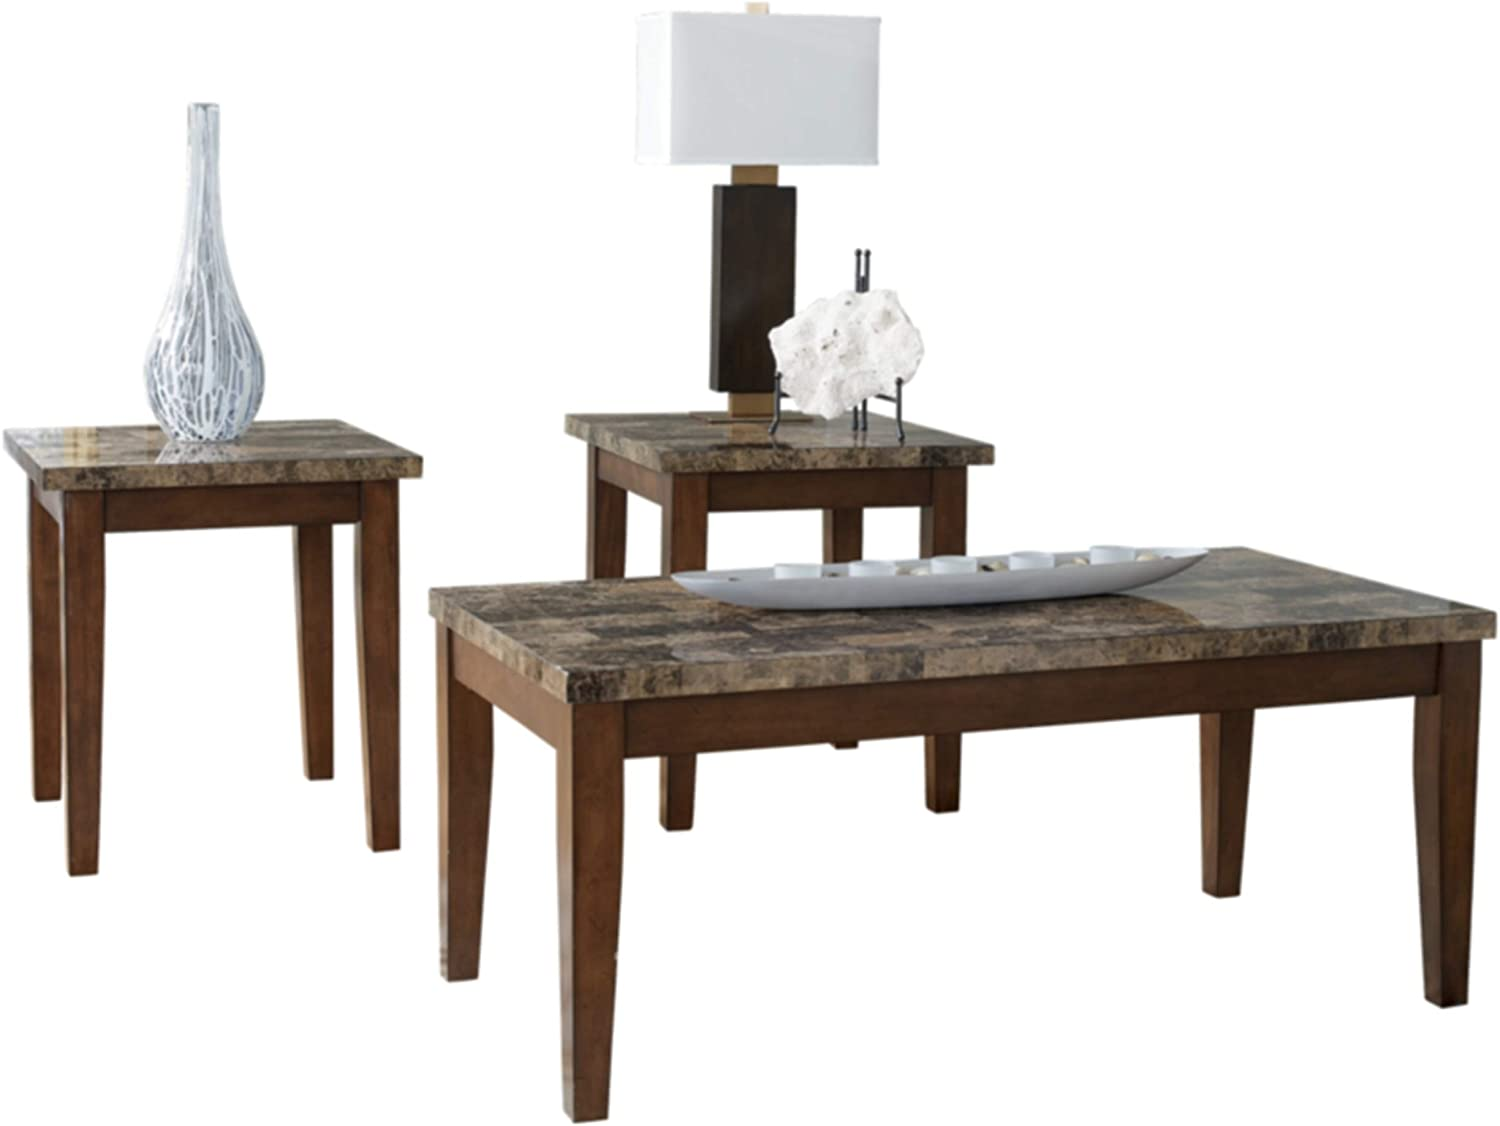 Signature Design by Ashley - Theo Faux Marble Occasional Table Set - Includes Cocktail Table & 2 End Tables, Warm Brown